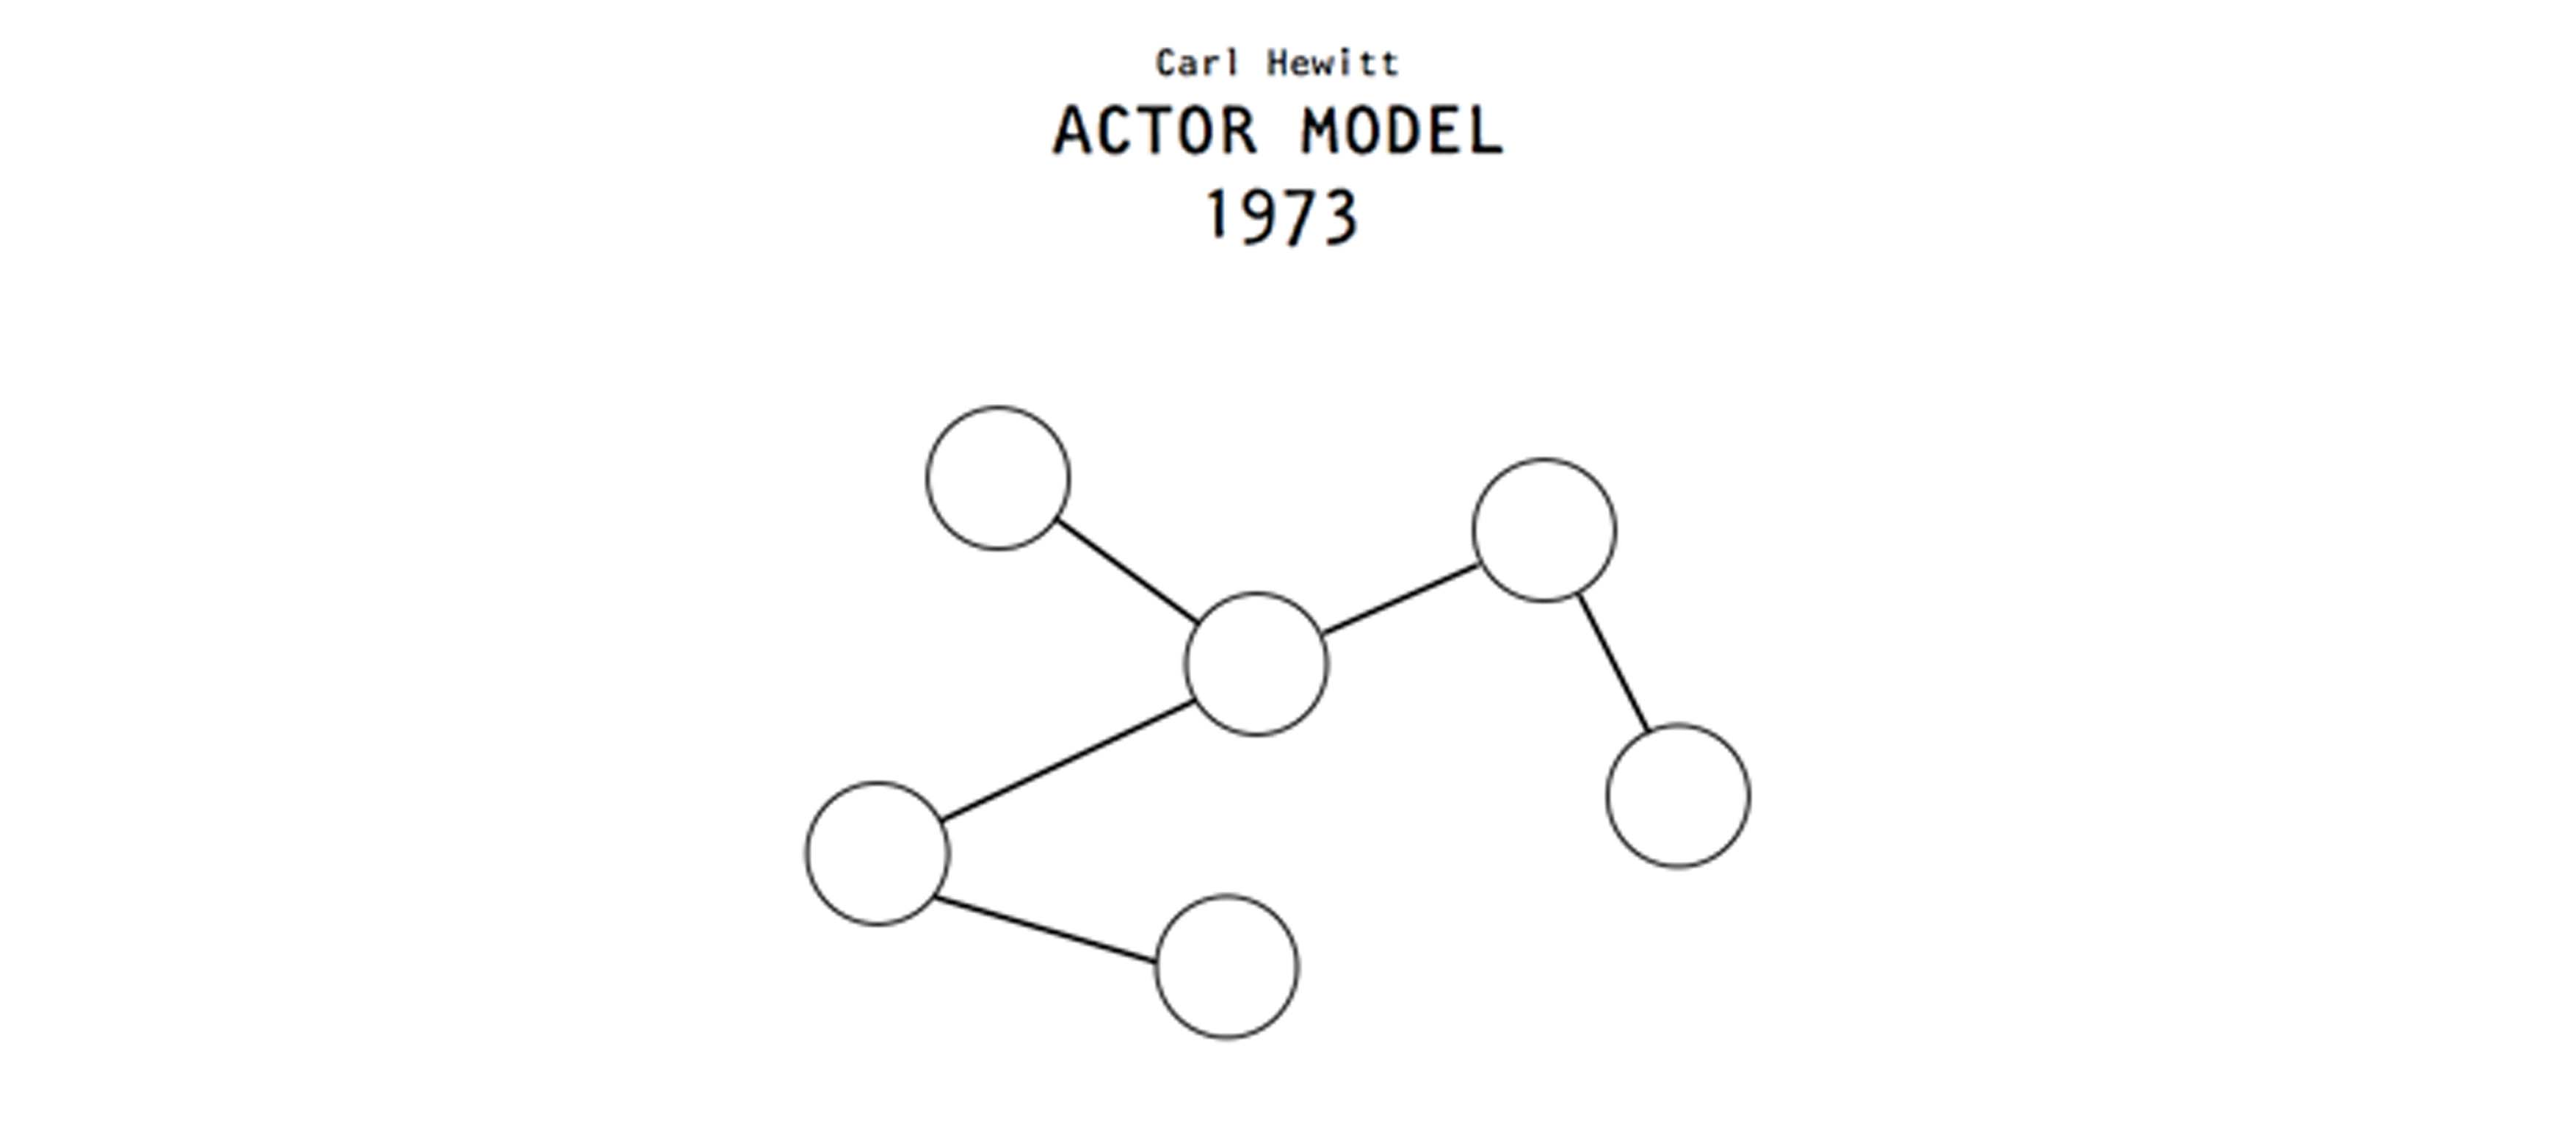 Actor model by Carl Hewitt, 1973. Image from http://worrydream.com/dbx/